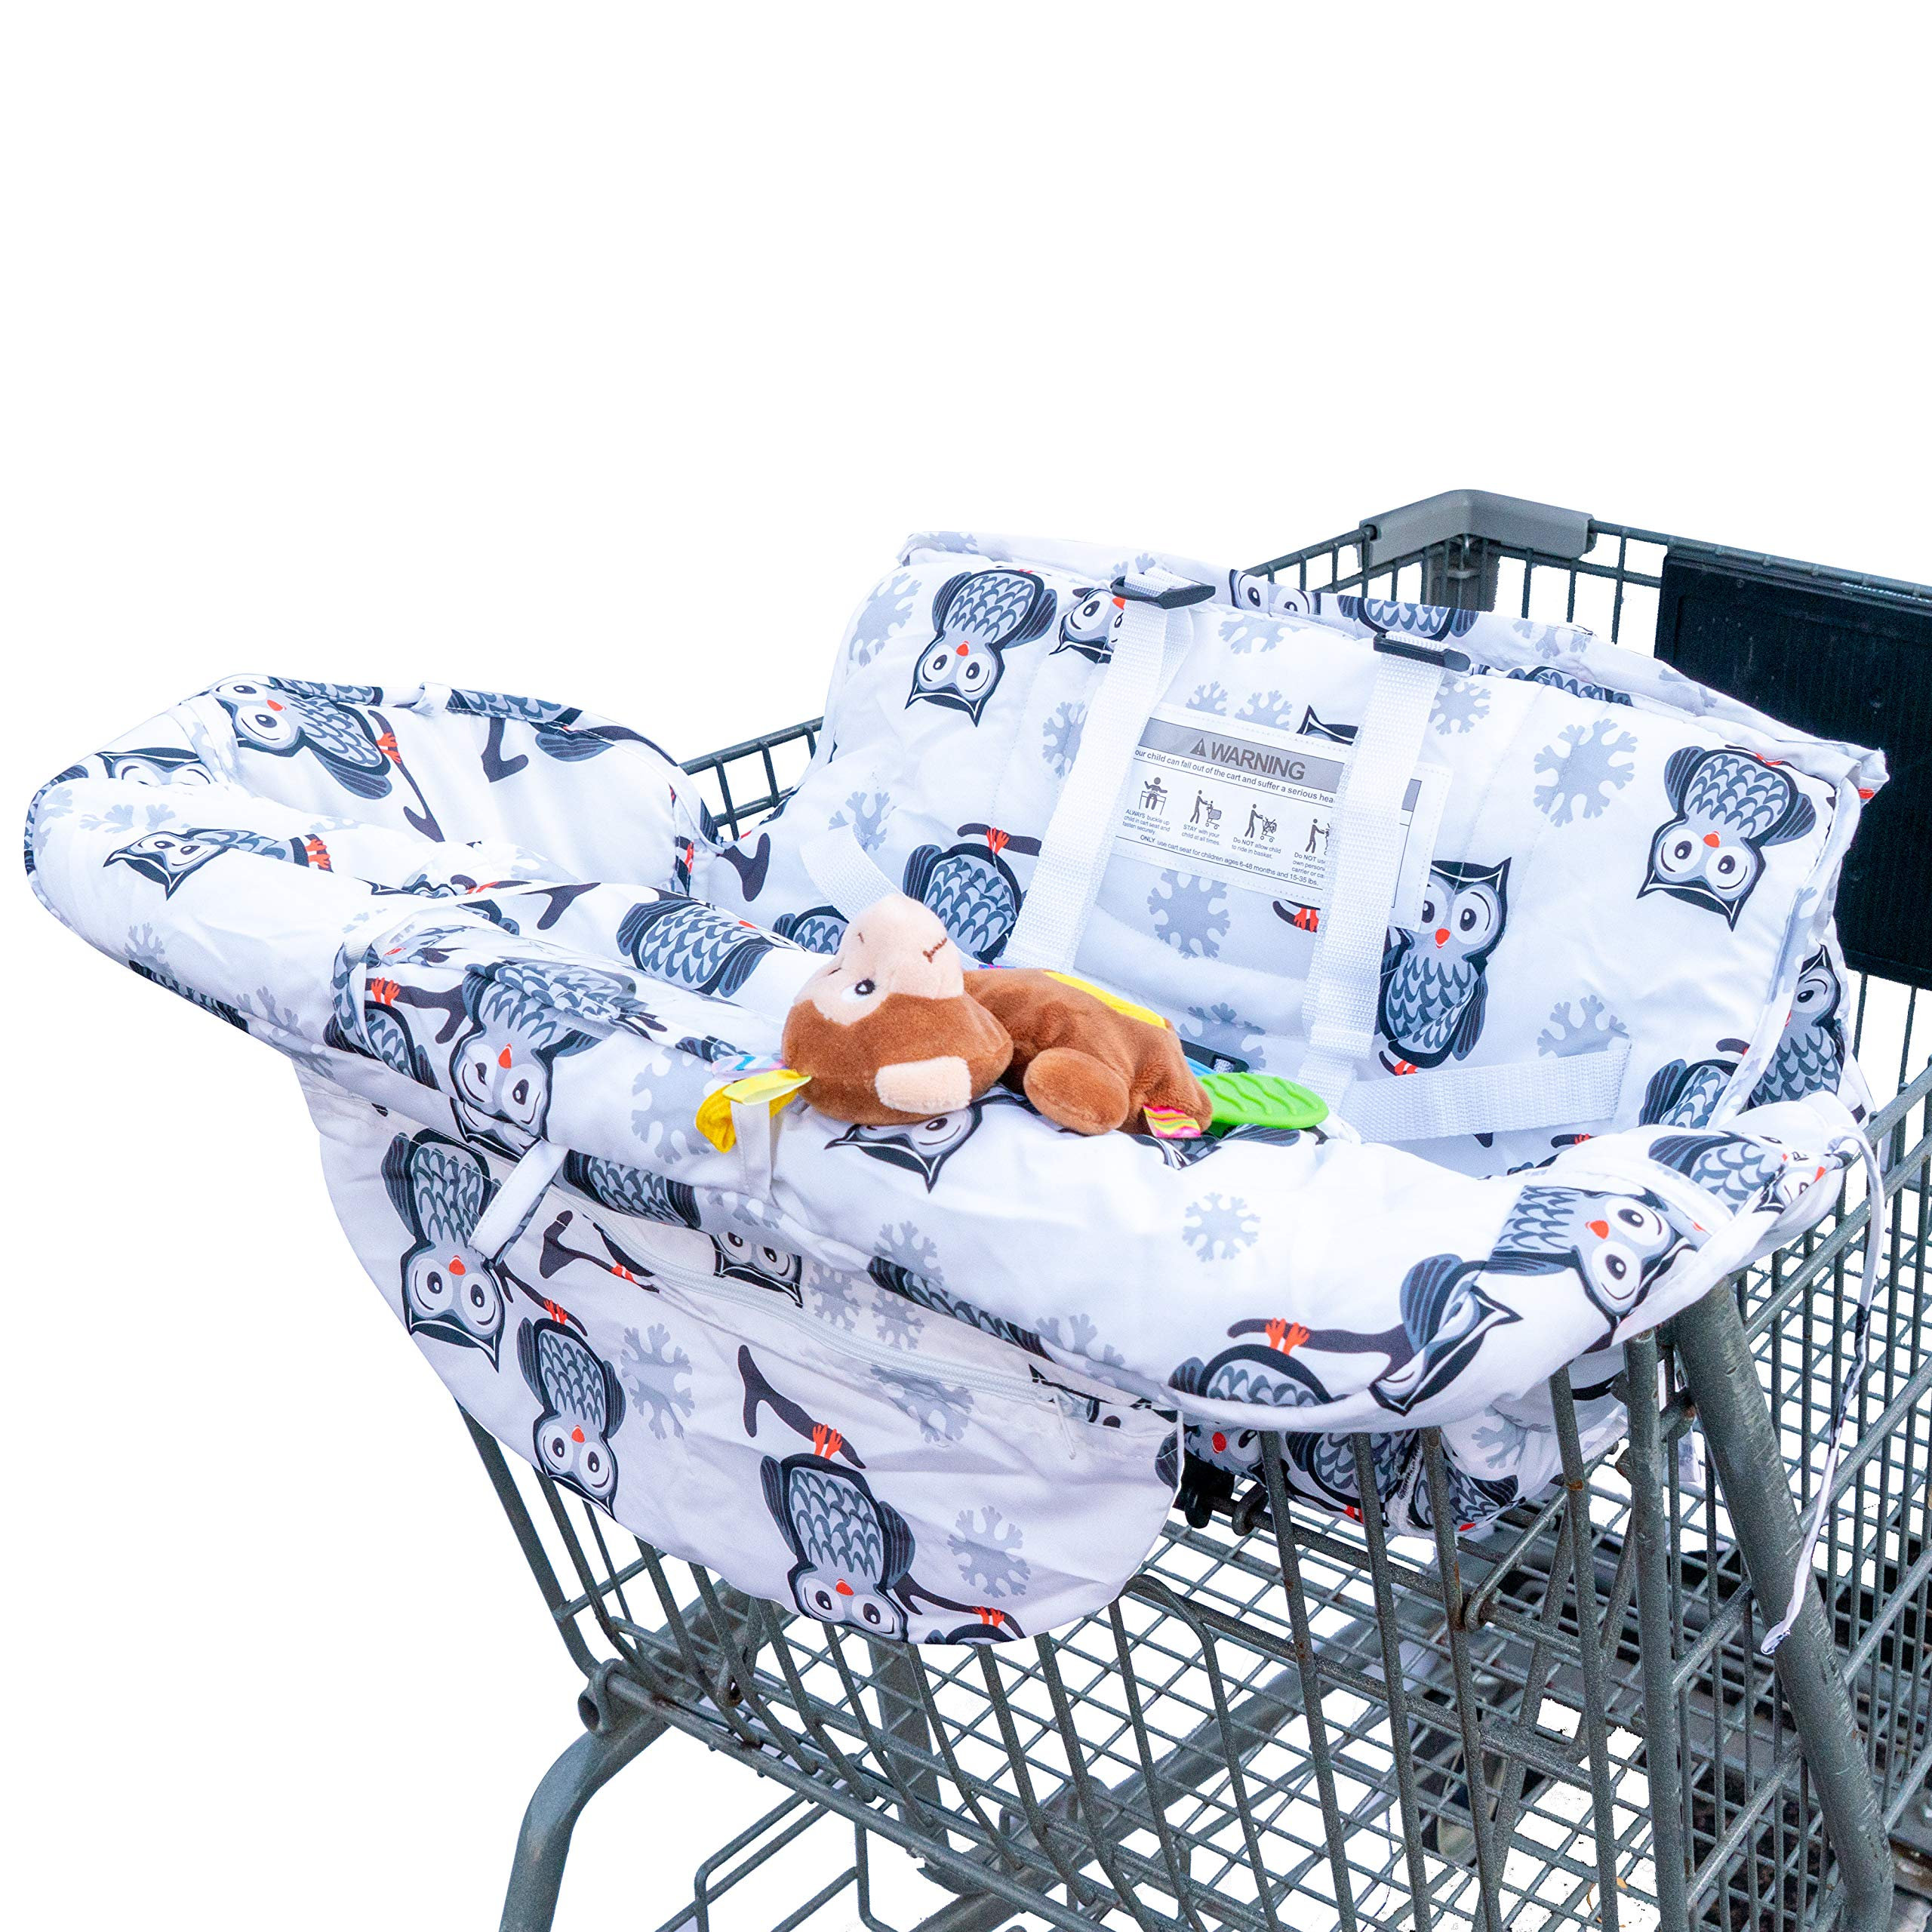 Shopping Cart Cover by Yasmin Box – 2-in-1 Baby Grocery Trolley Seat and Highchair Covers - For Boy or Girl - Cushy with Extra Padded Cushion - Infant Teether - Portable and Foldable - Kids Protection